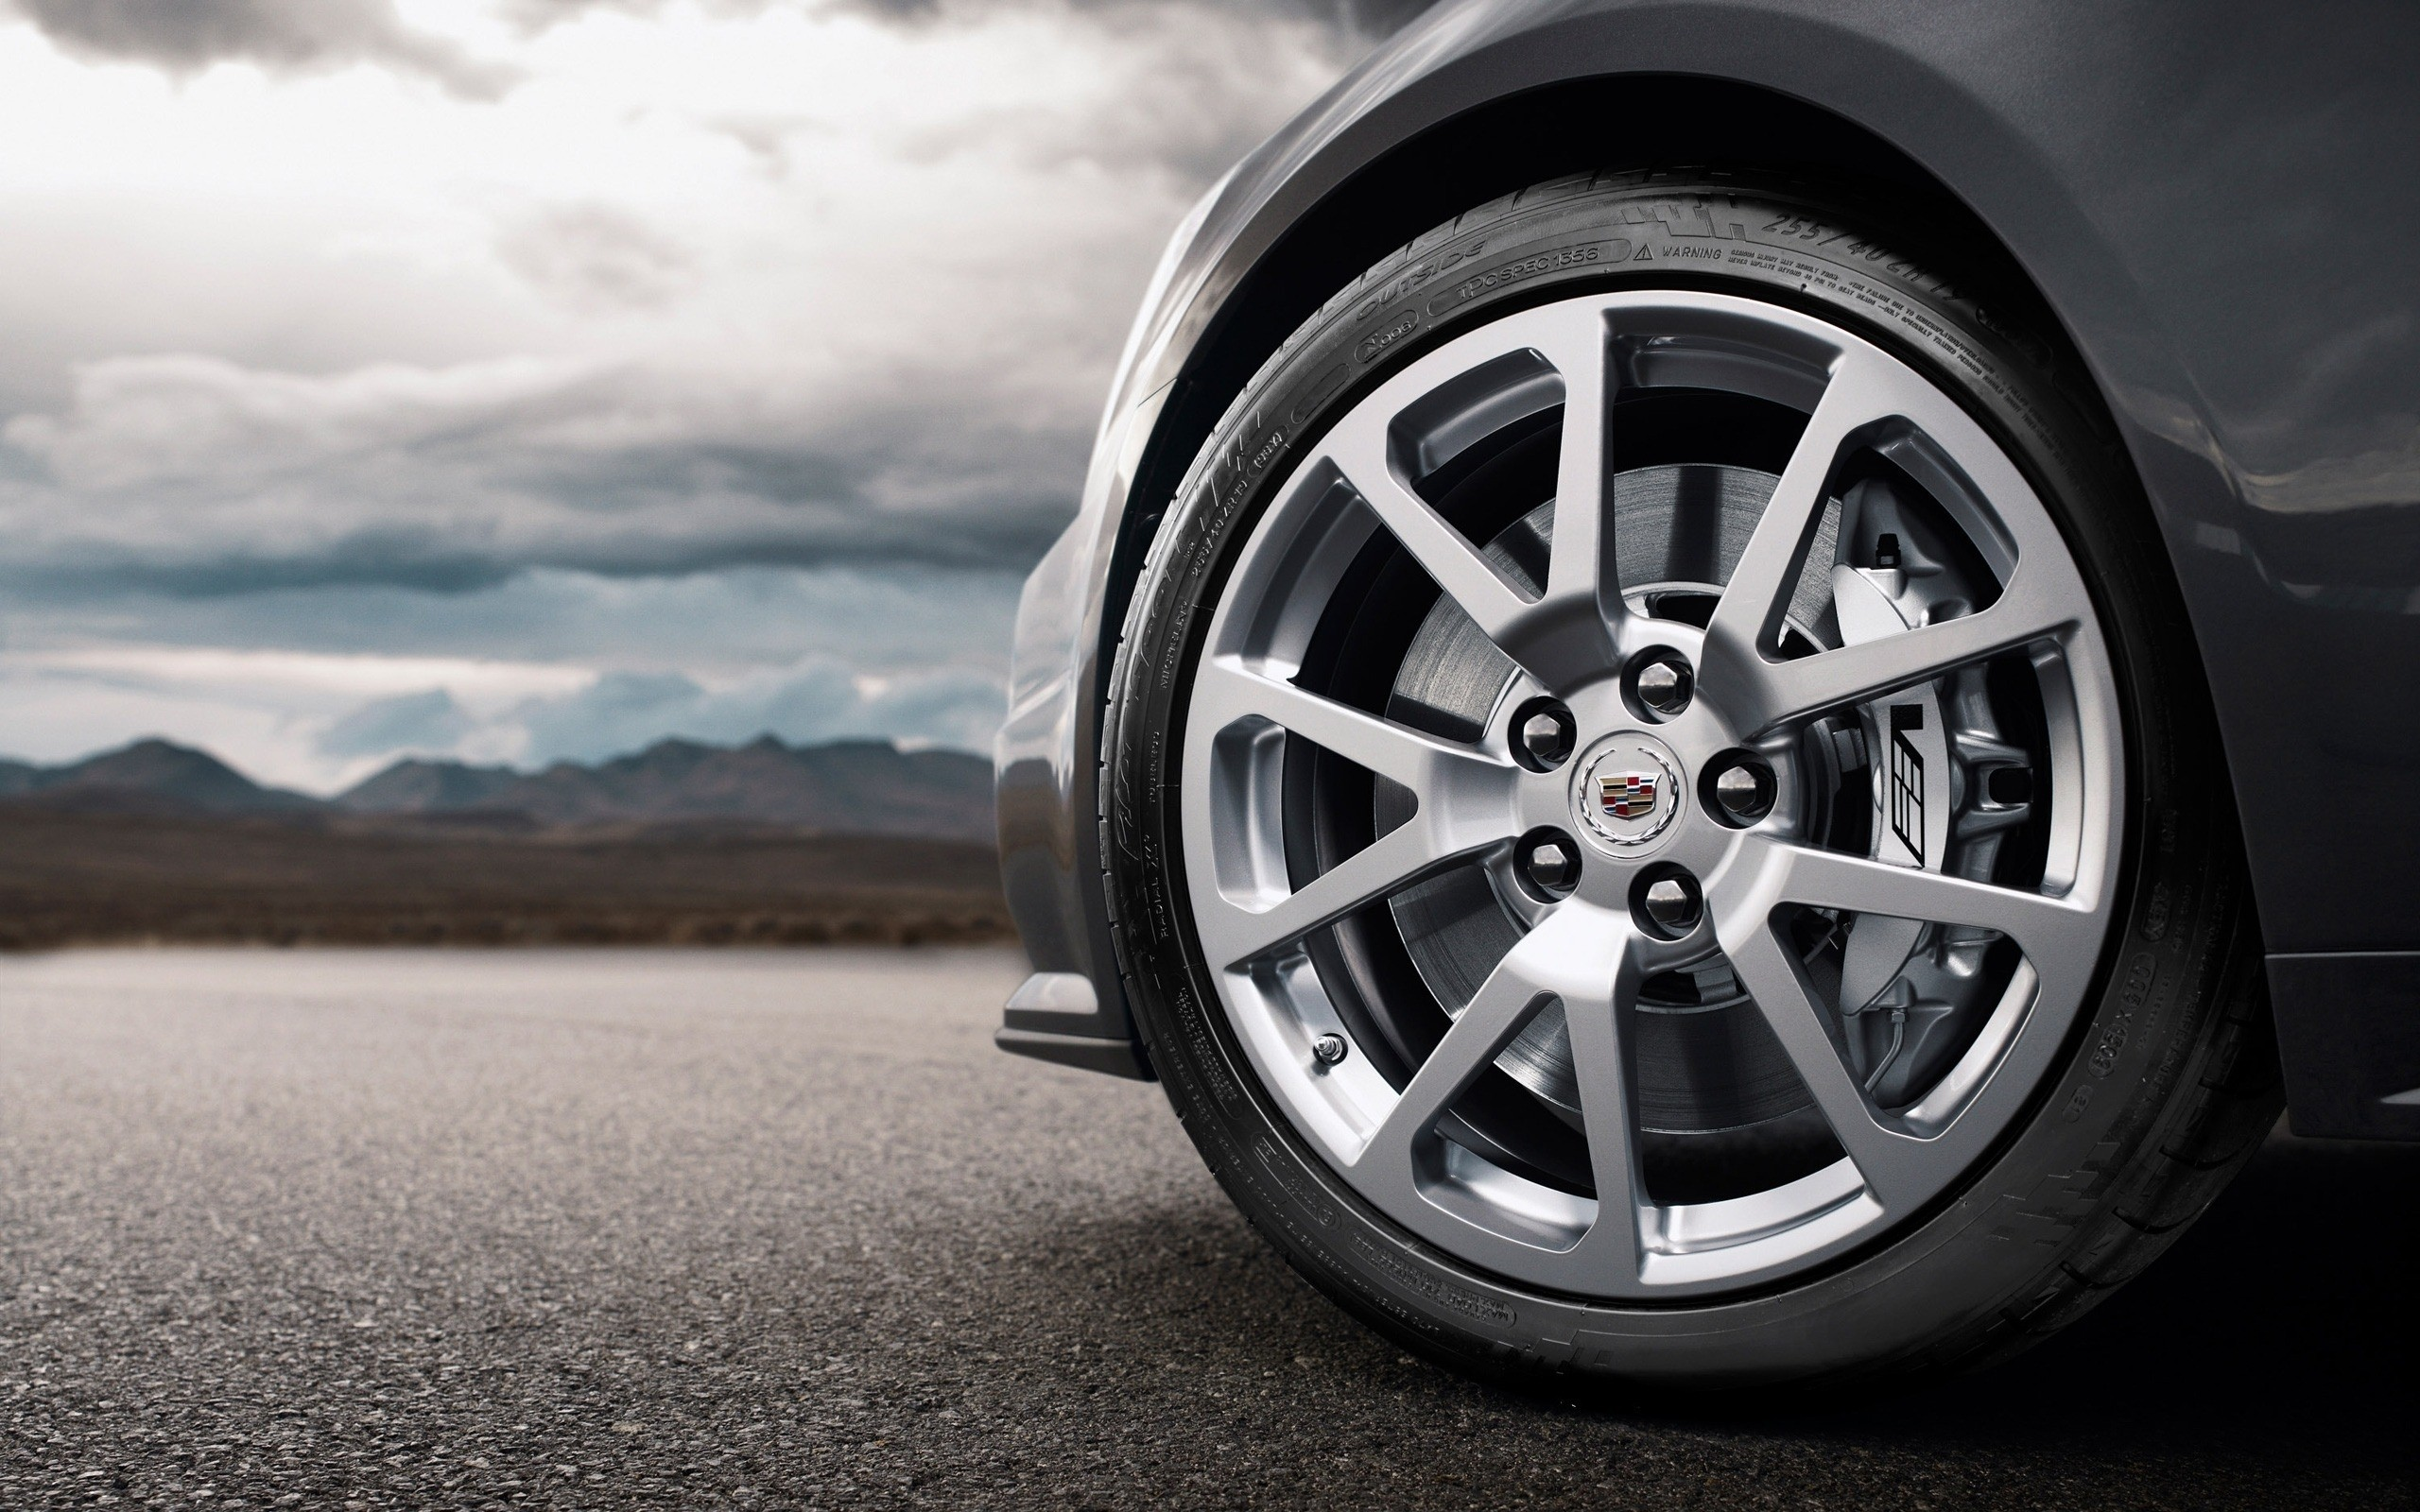 Wheel of a car with the Cadillac emblem, photo 2560x1600.